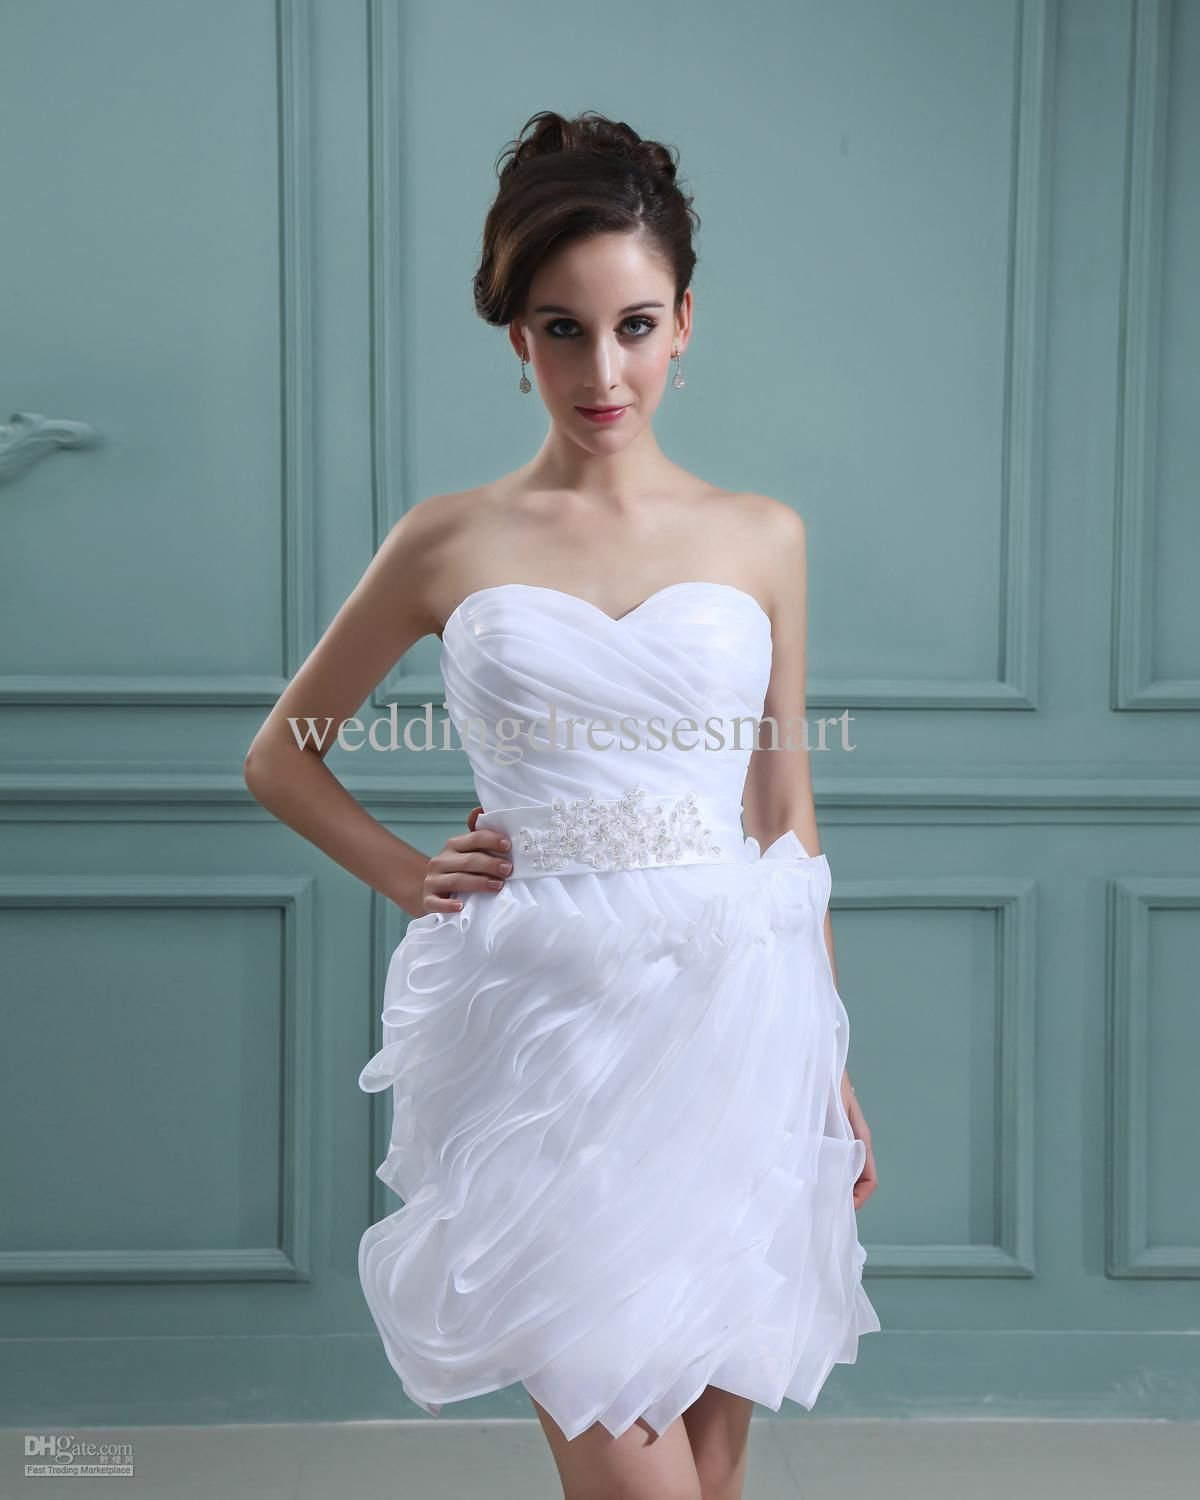 Mini white wedding dress  Short White Wedding Dresses  Wedding Dresses for Guests Check more